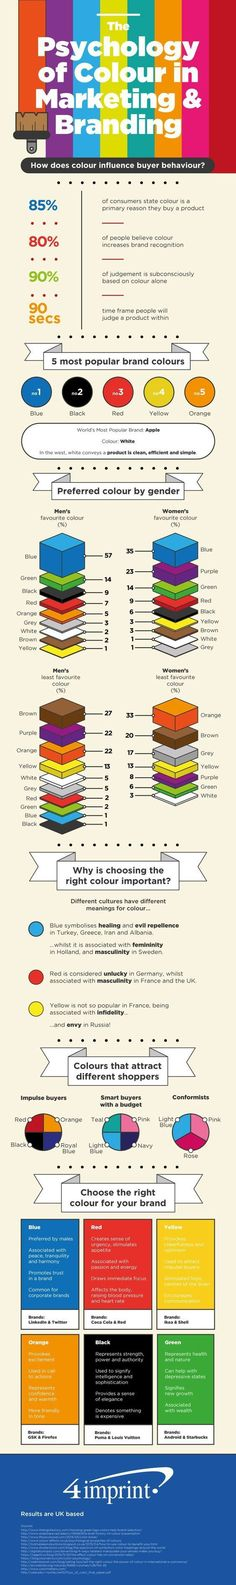 color wheel pocket guide to mixing color artist paint color wheel baking 101 pinterest. Black Bedroom Furniture Sets. Home Design Ideas